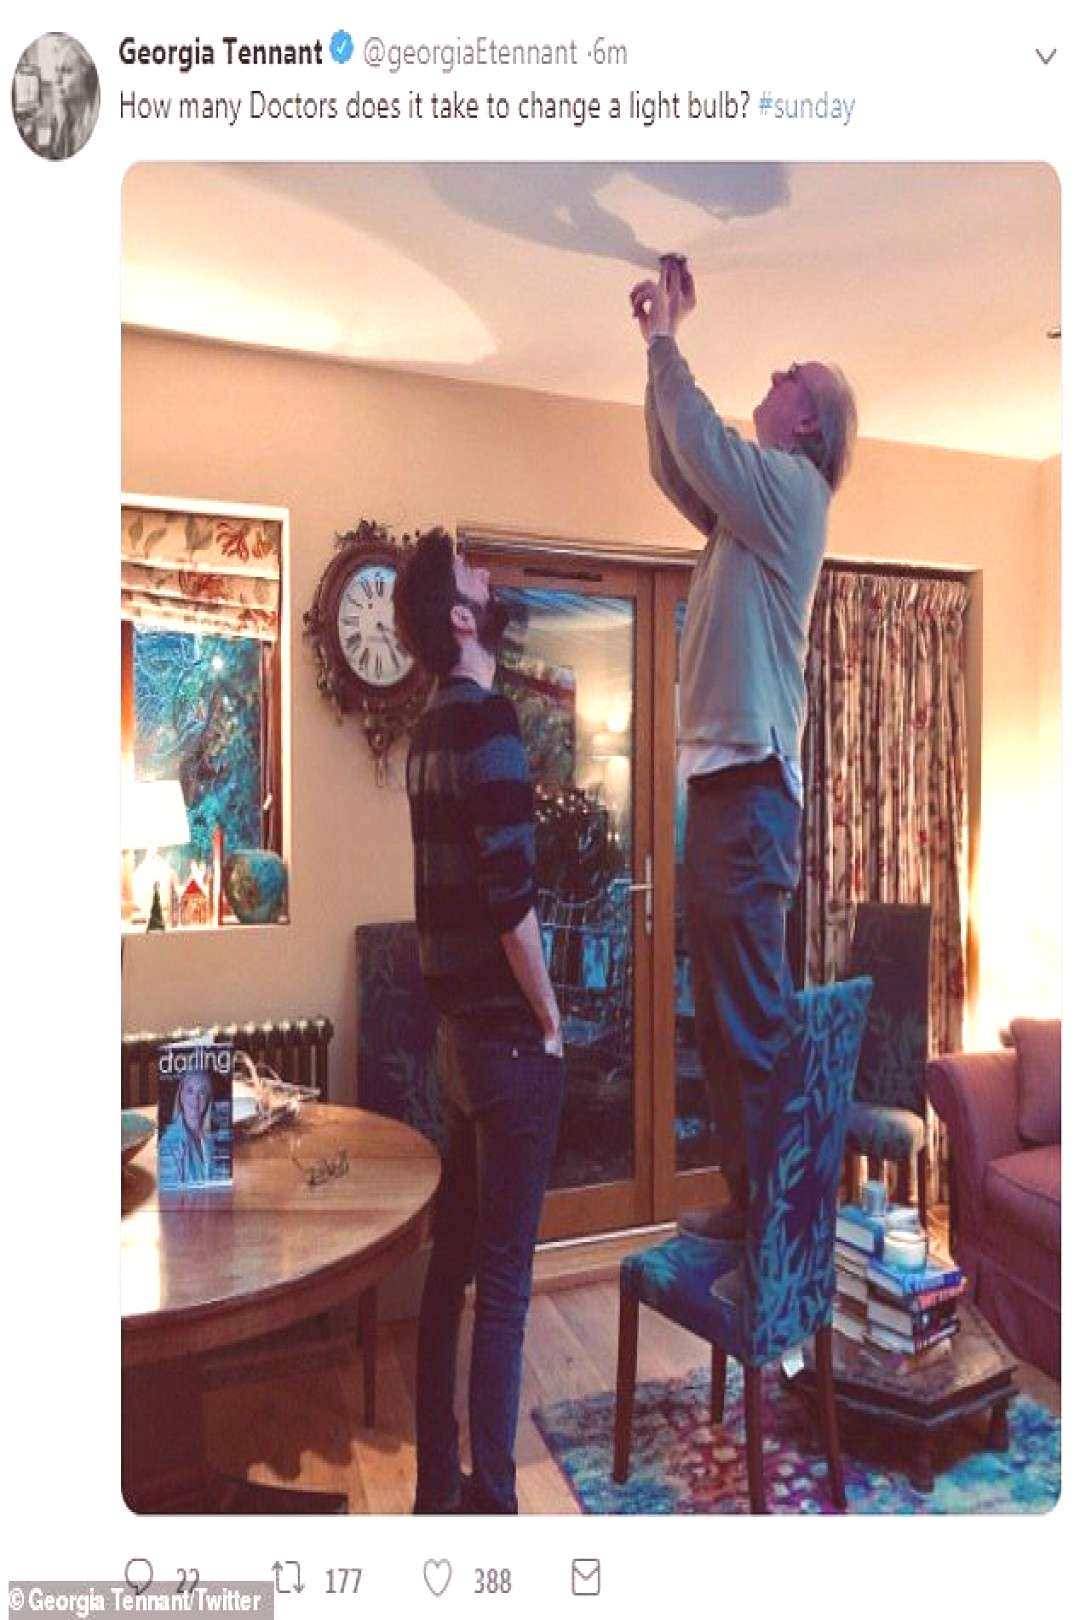 How many Doctors does it take to change a light bulb? David Tennants wife G... How many Doctors do